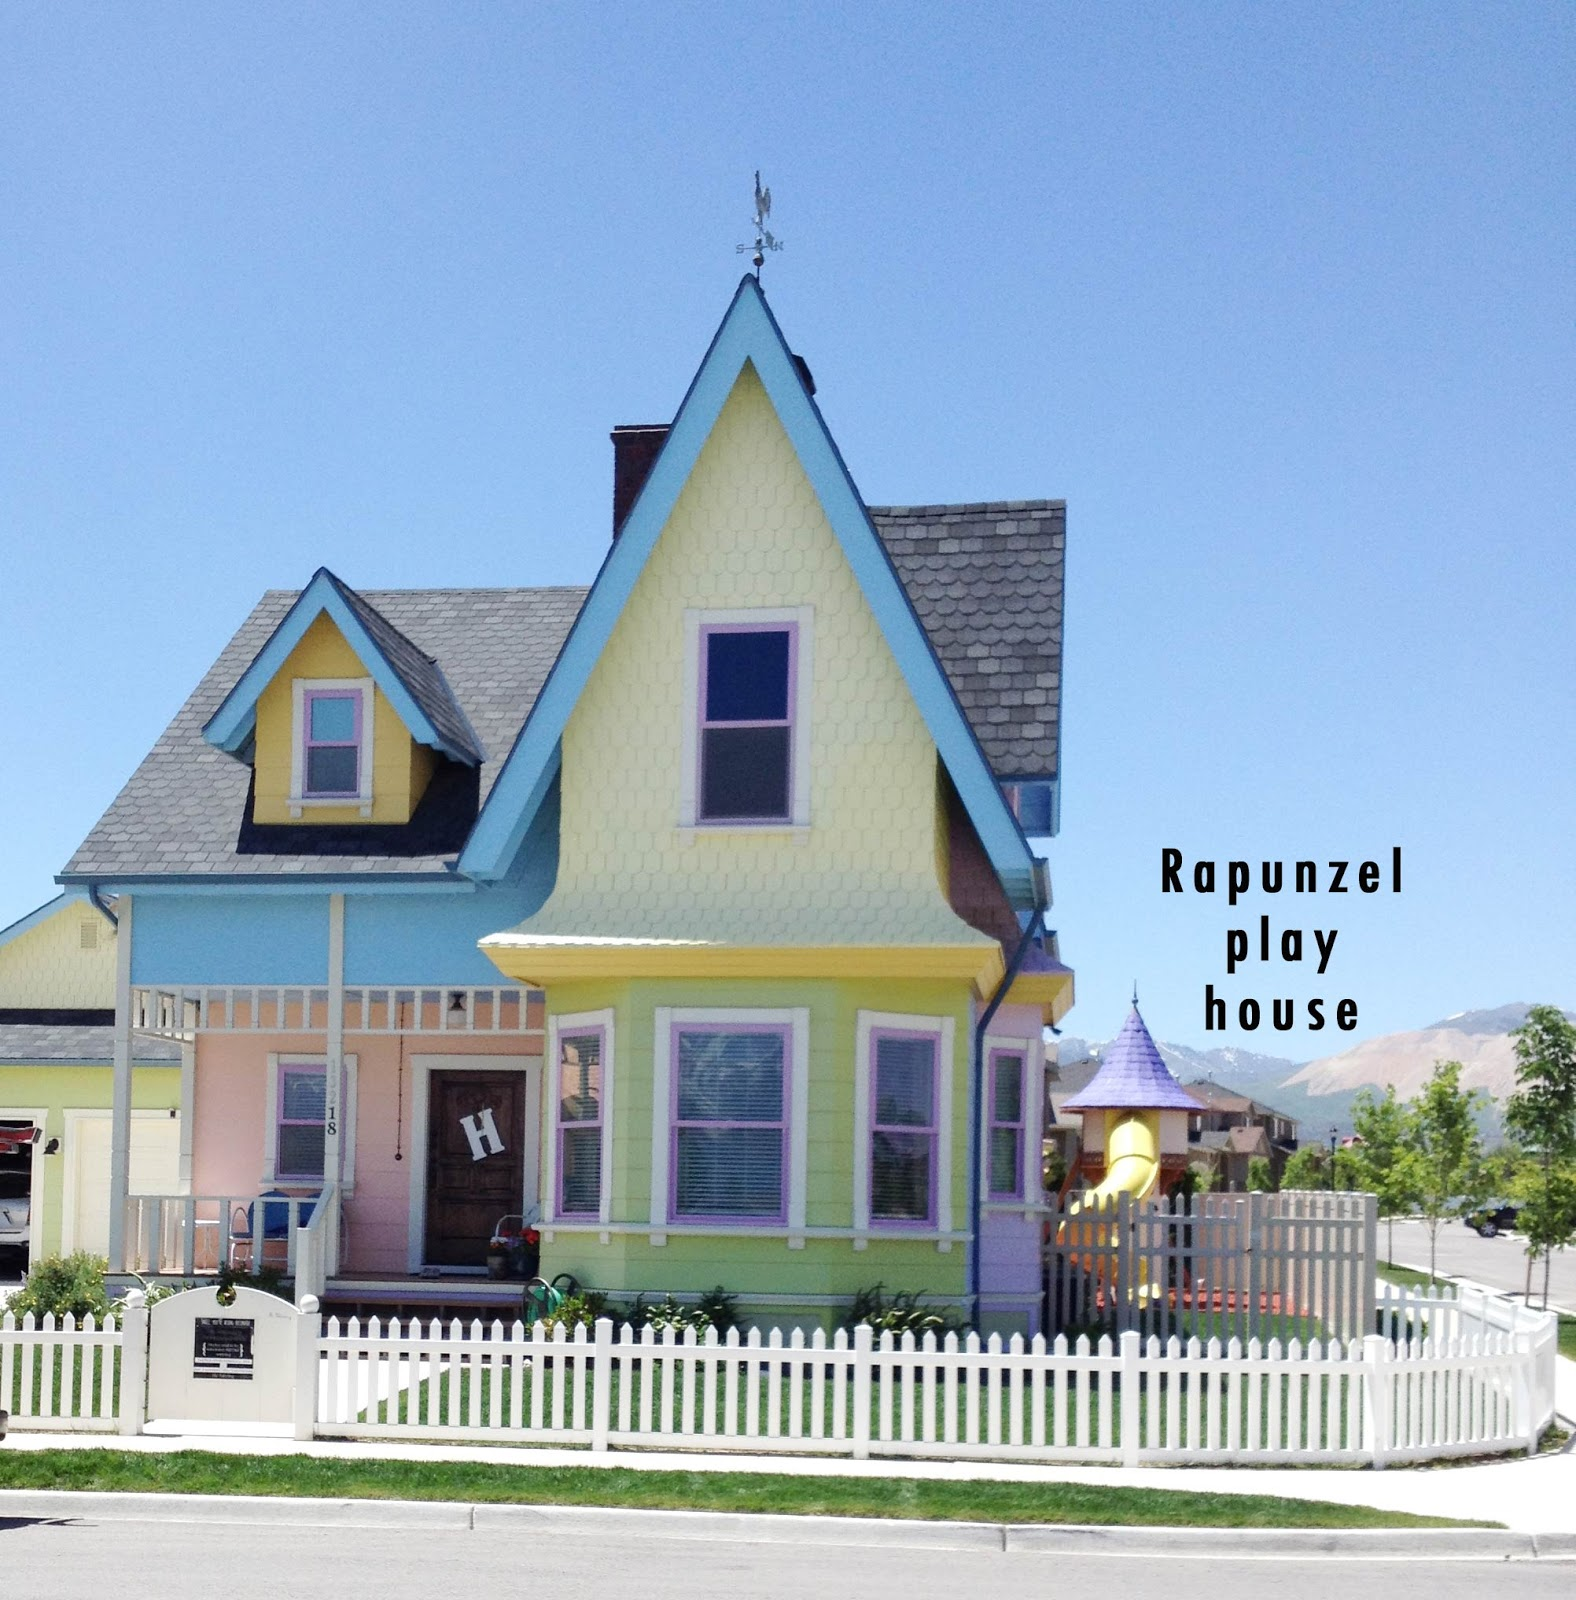 Want To See The Original House Plans Click Here